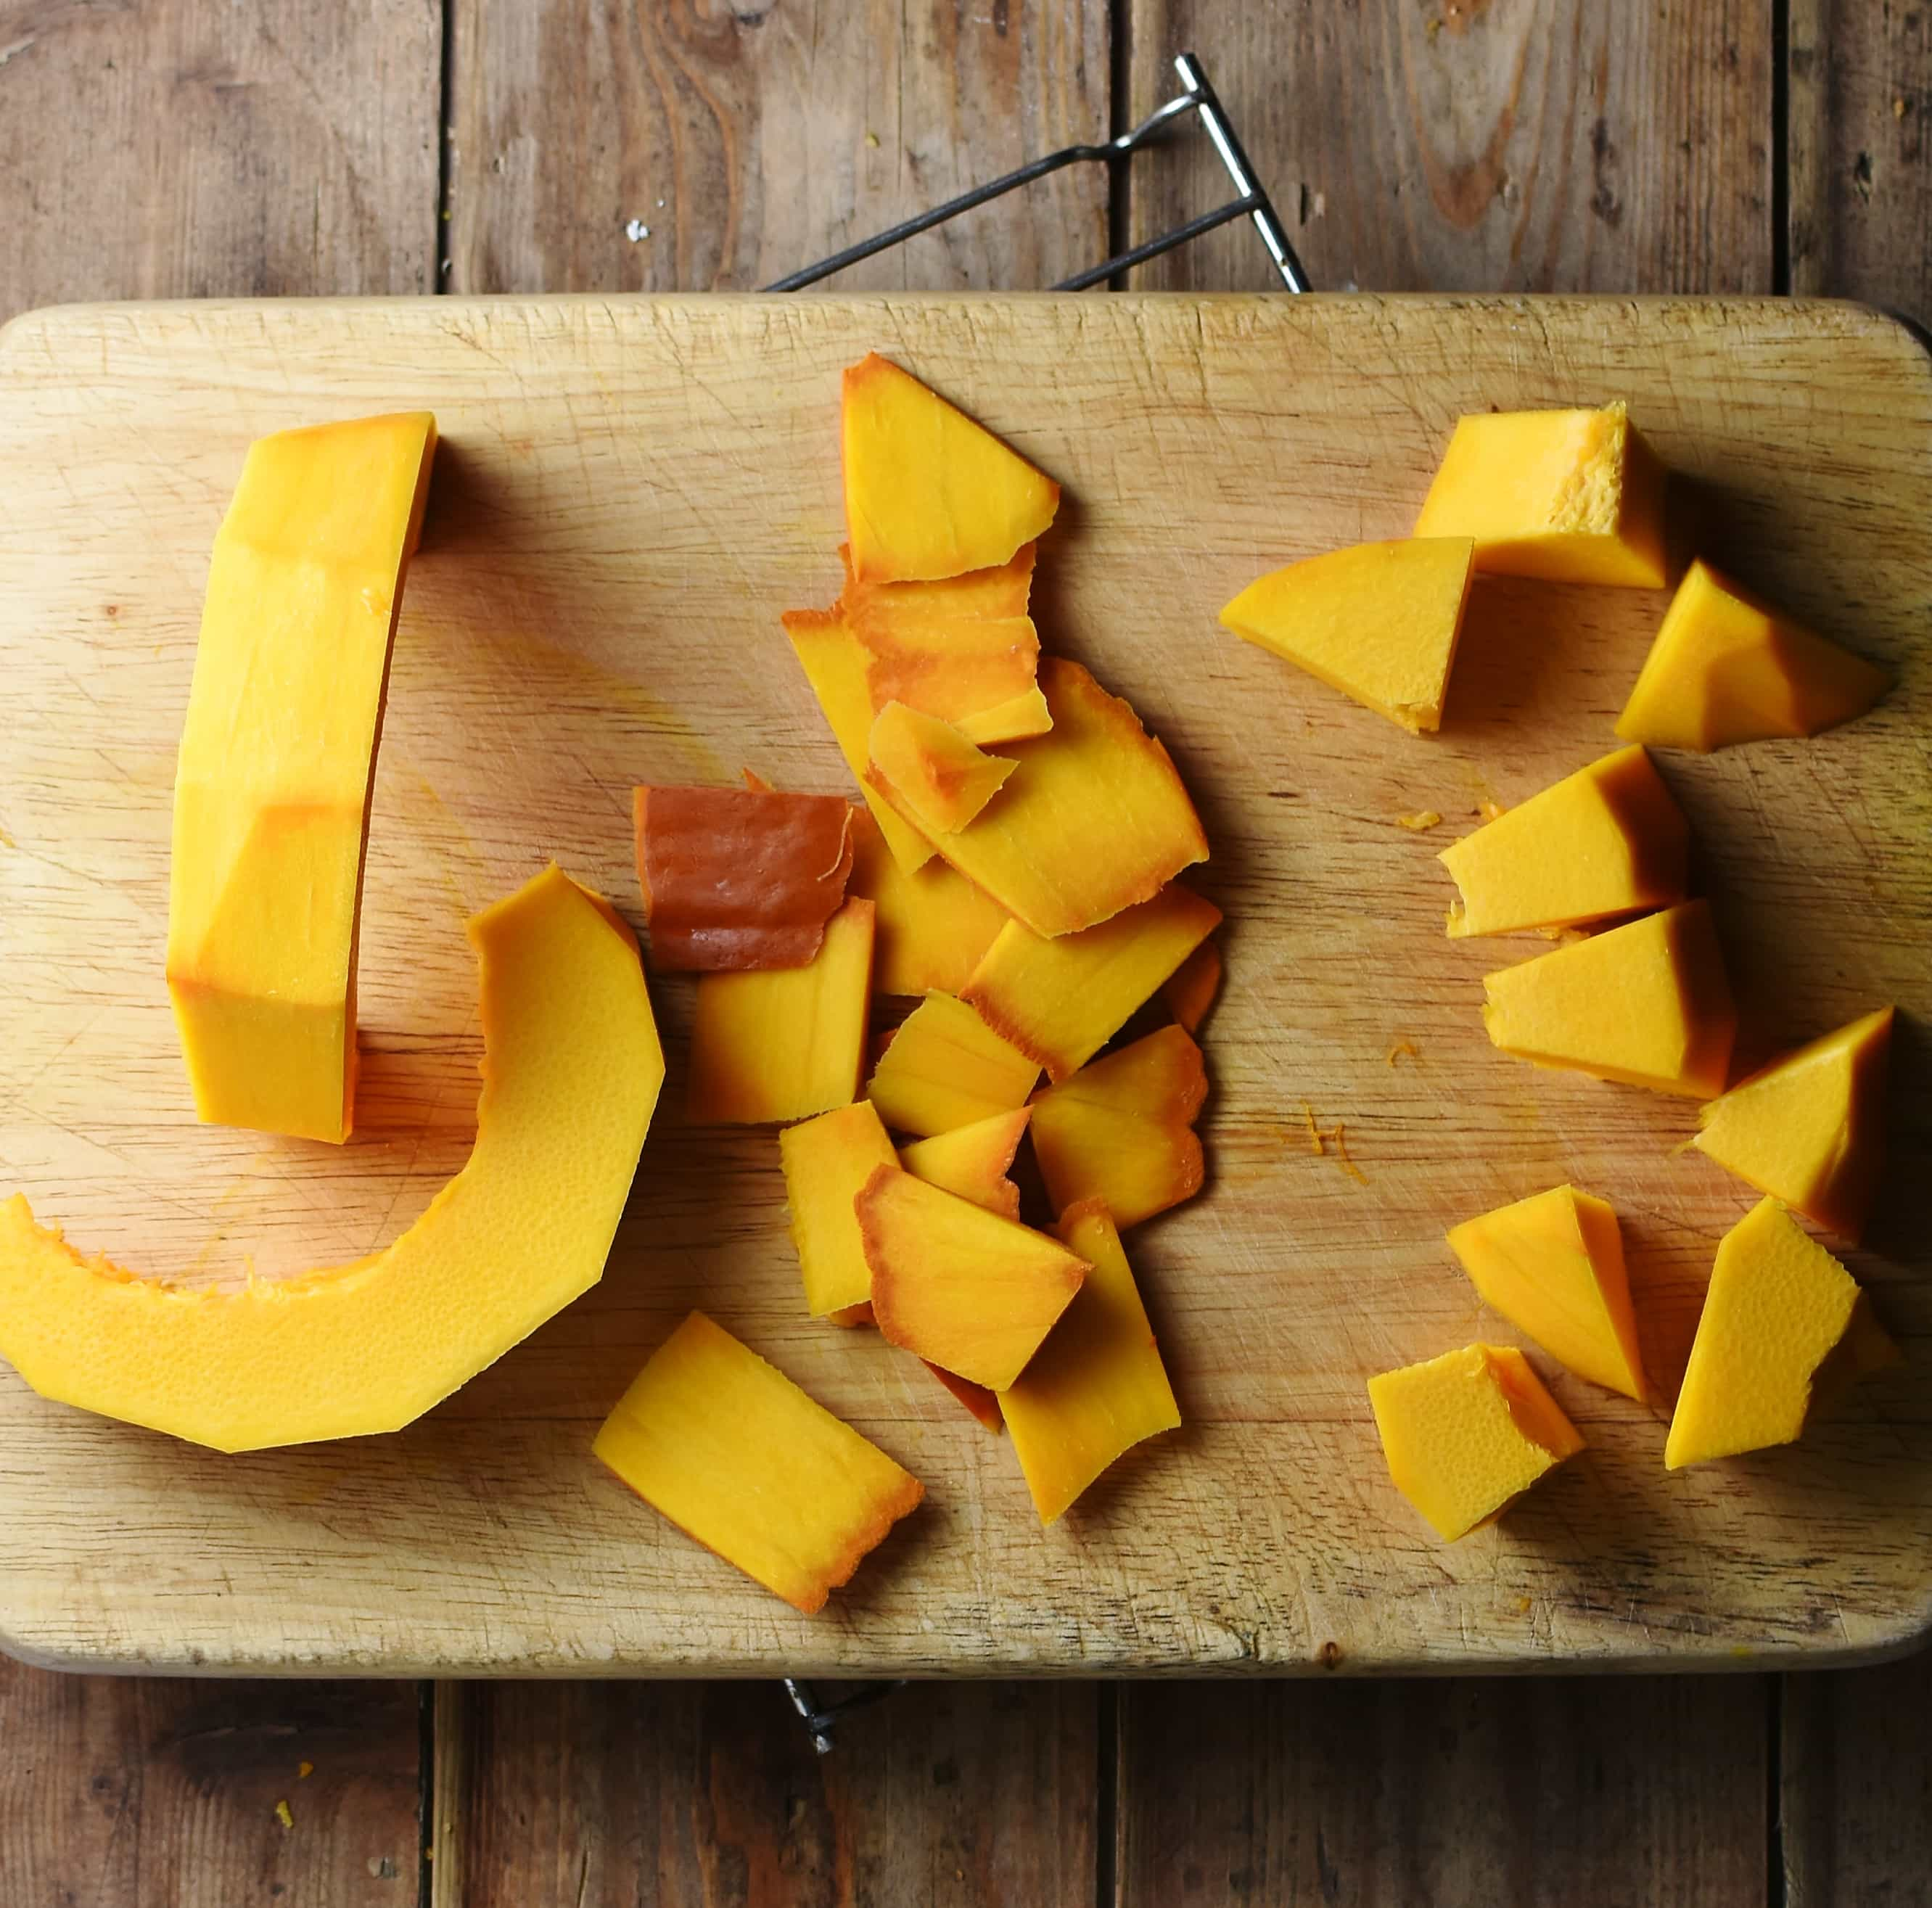 Peeled and chopped pumpkin on wooden board.